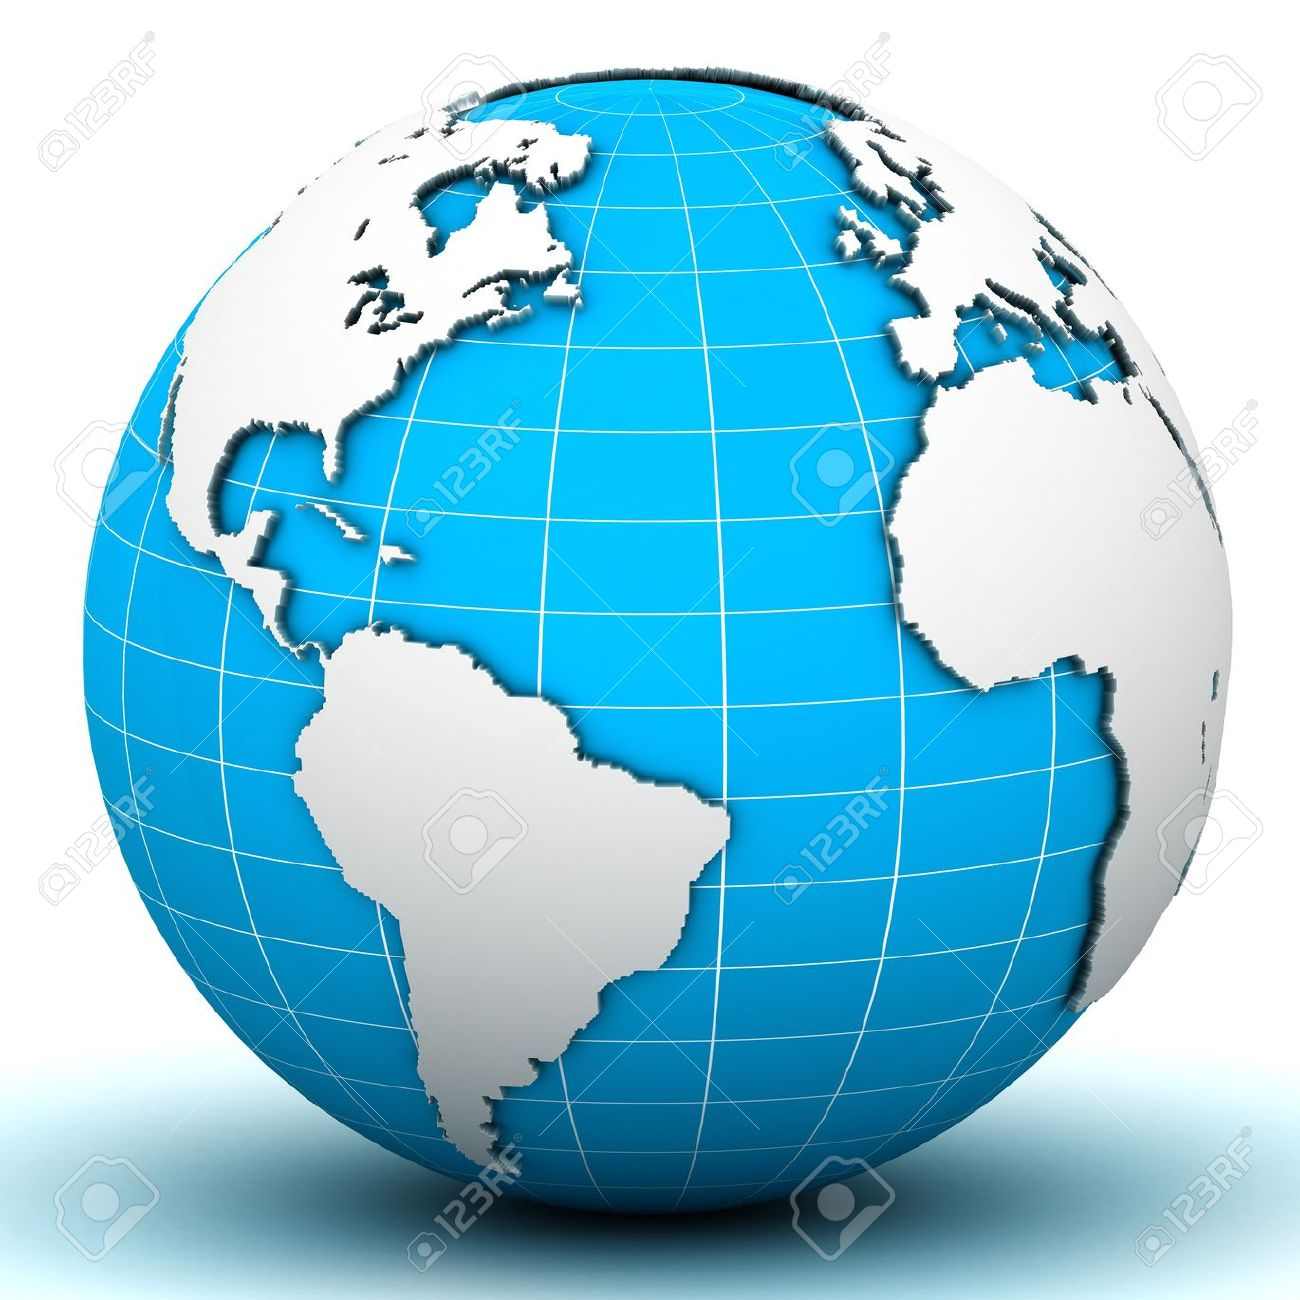 World Globe Map Stock Photo, Picture And Royalty Free Image. Image